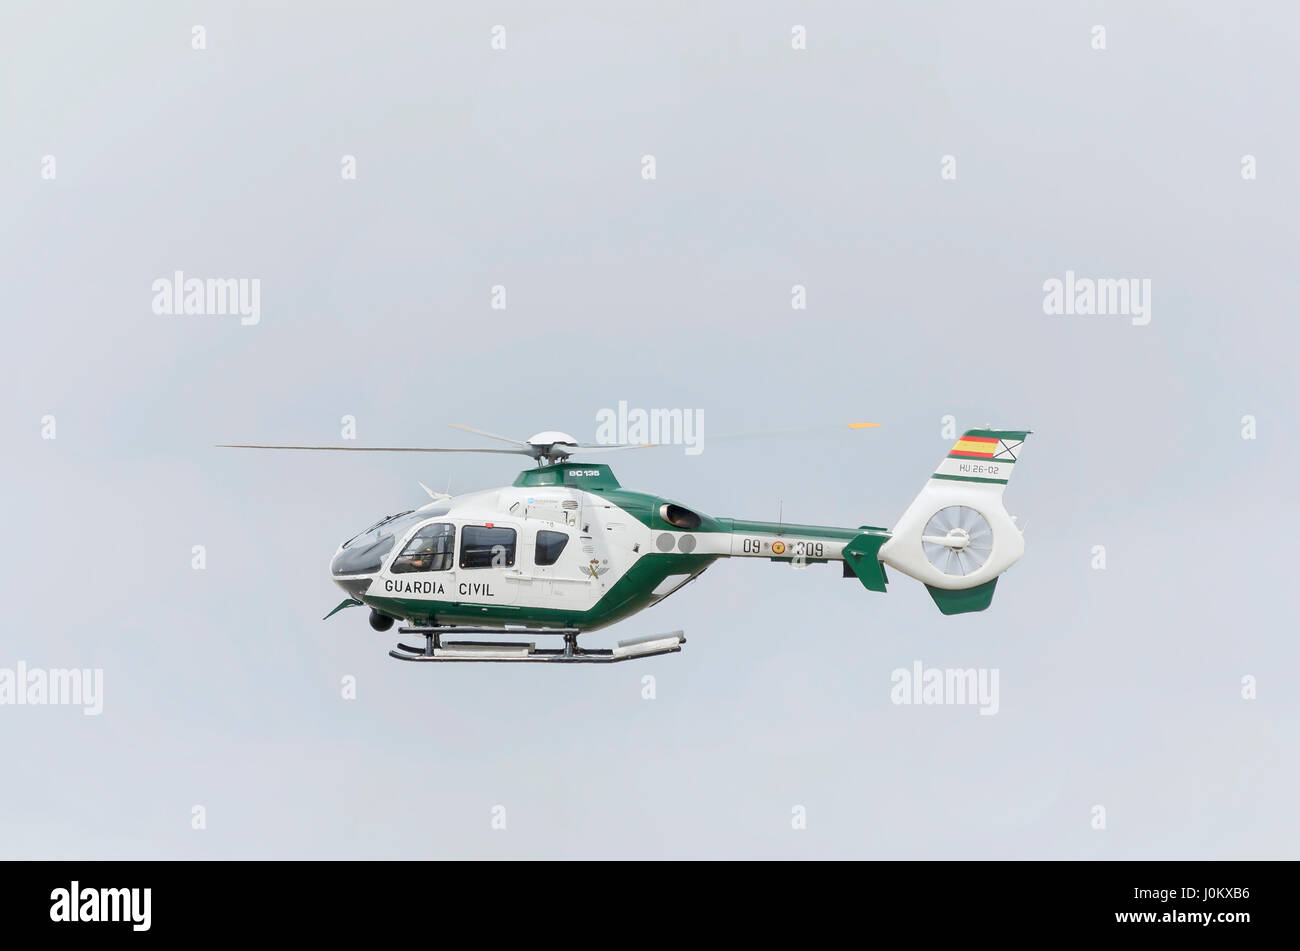 Spanish helicopter, Eurocopter EC135 (Airbus H135), of Guardia Civil is landing in Castellon de la Plana's airfield. - Stock Image